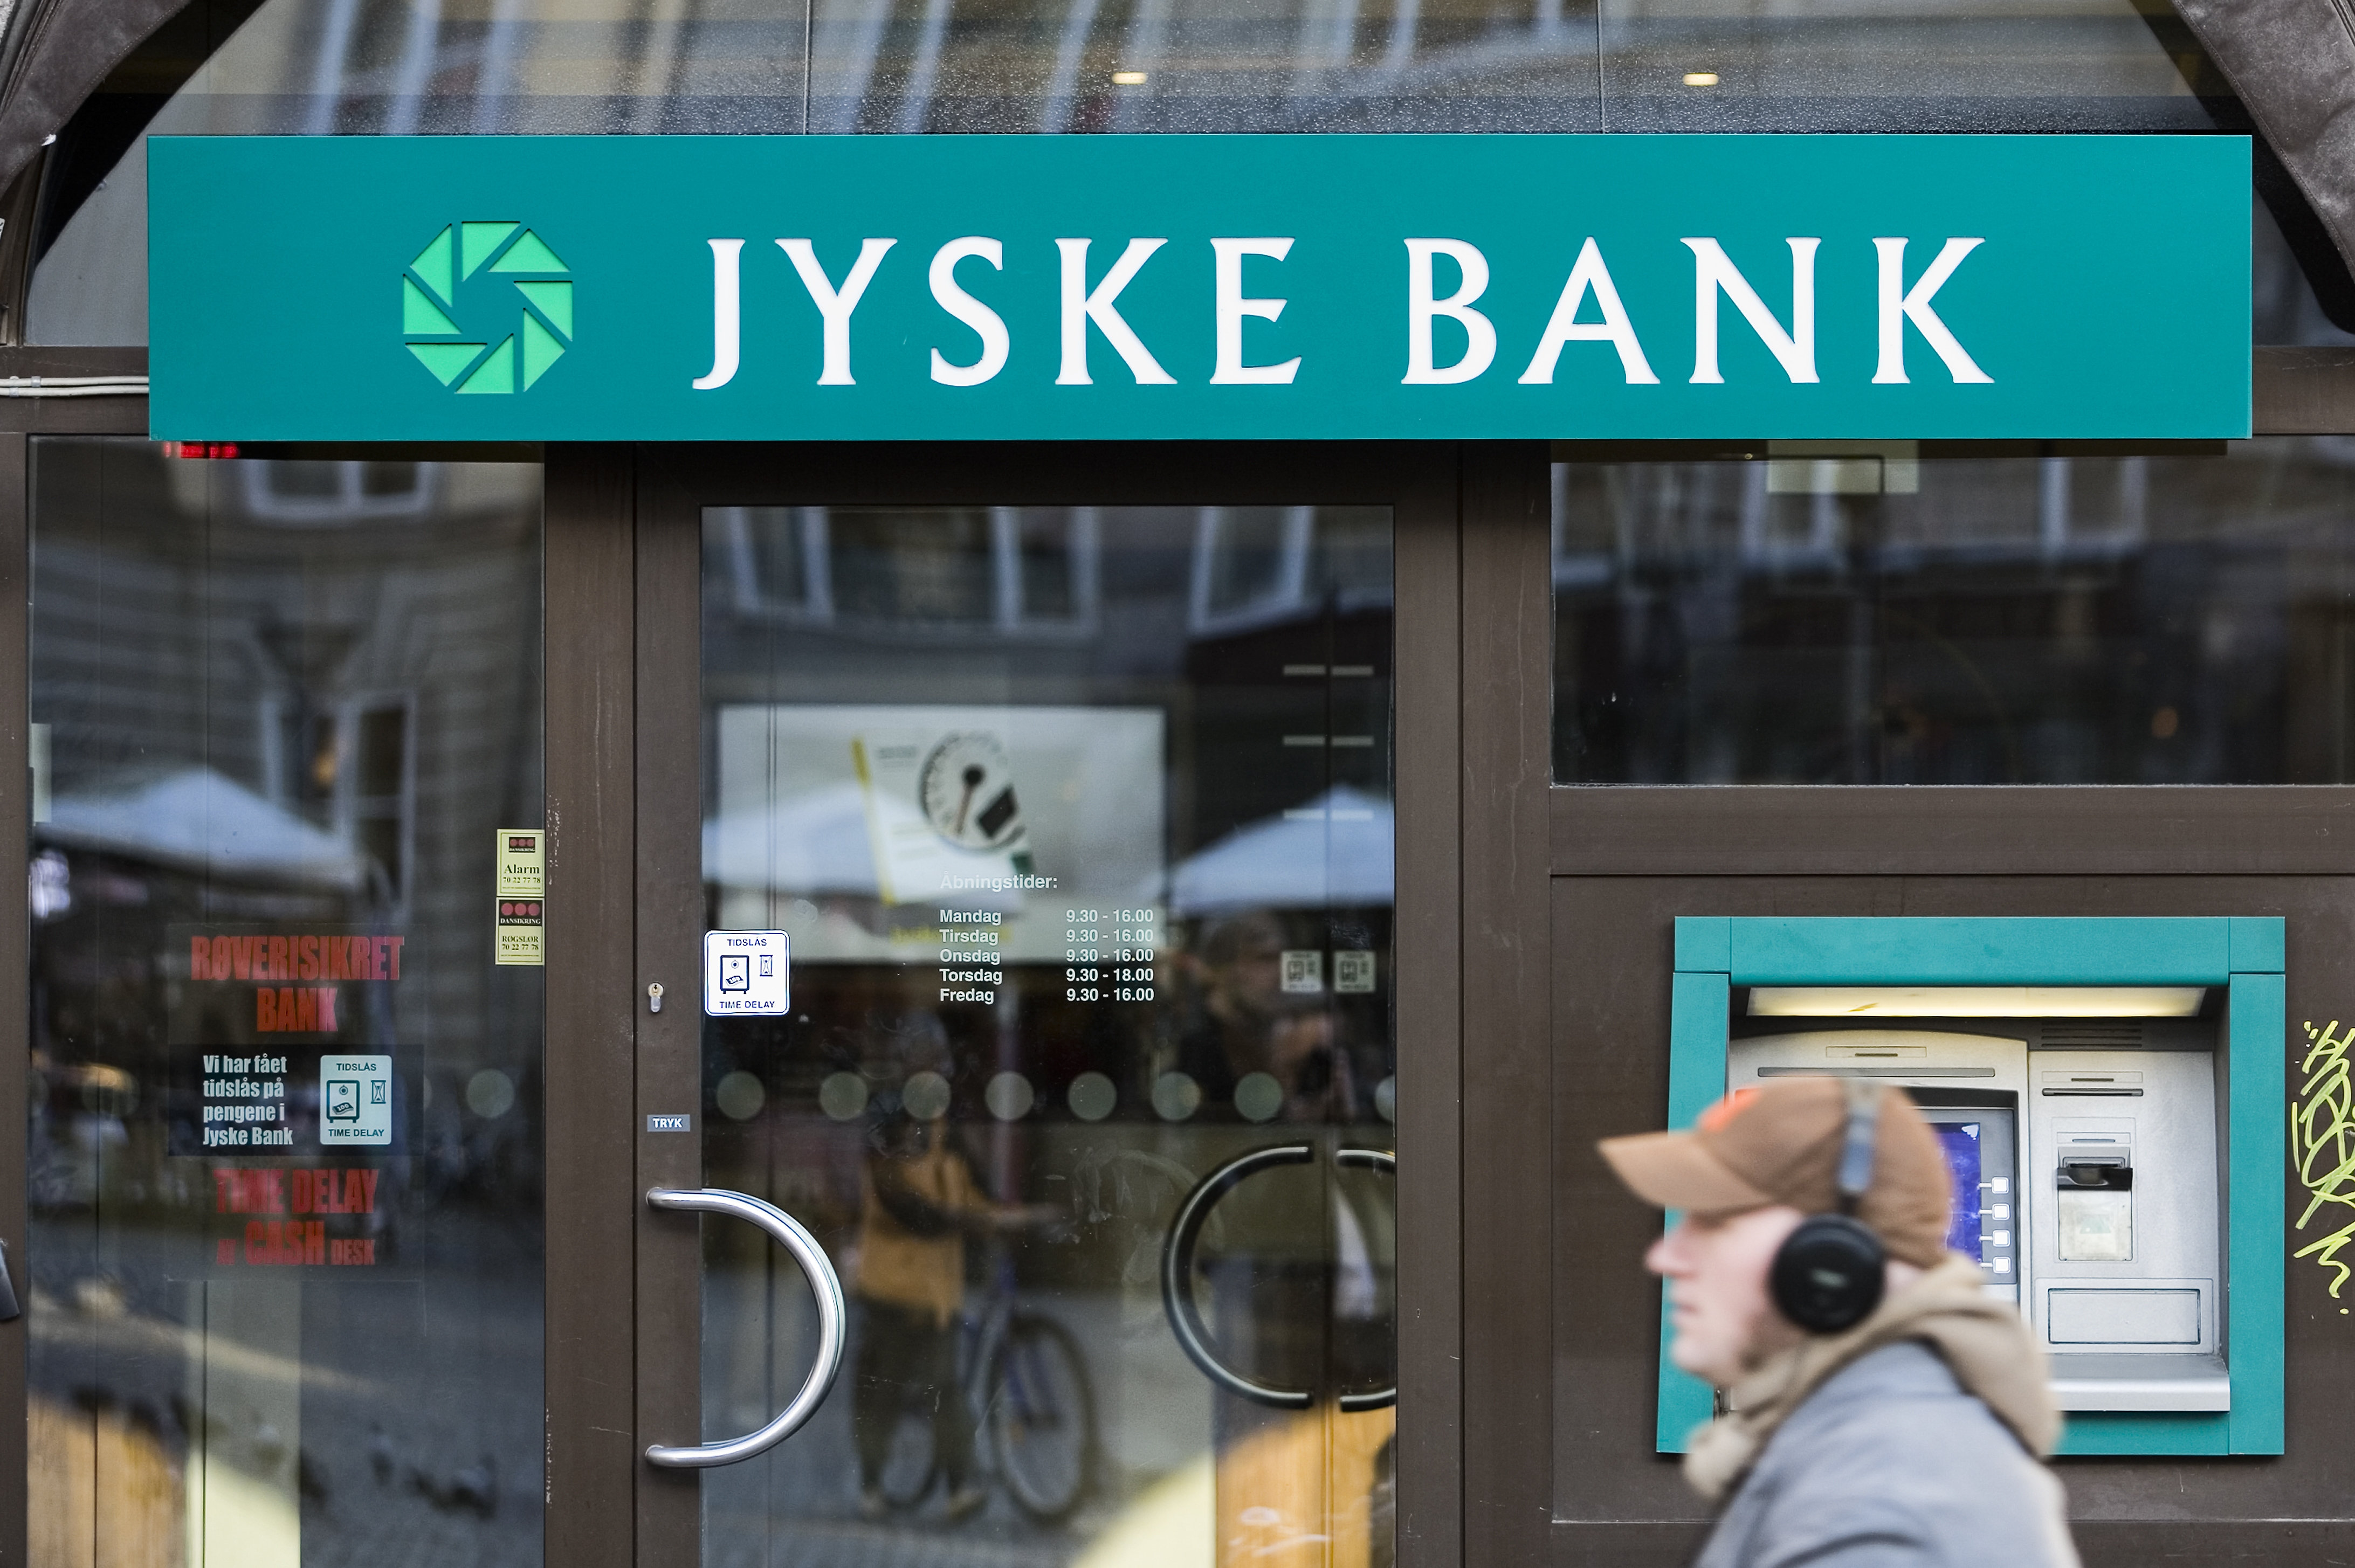 jyske bank essay When the best essay contributions are selected, dong energy, jyske bank, and carlsberg group will invite some of the best essay writers to participate in exclusive events at their headquarters.